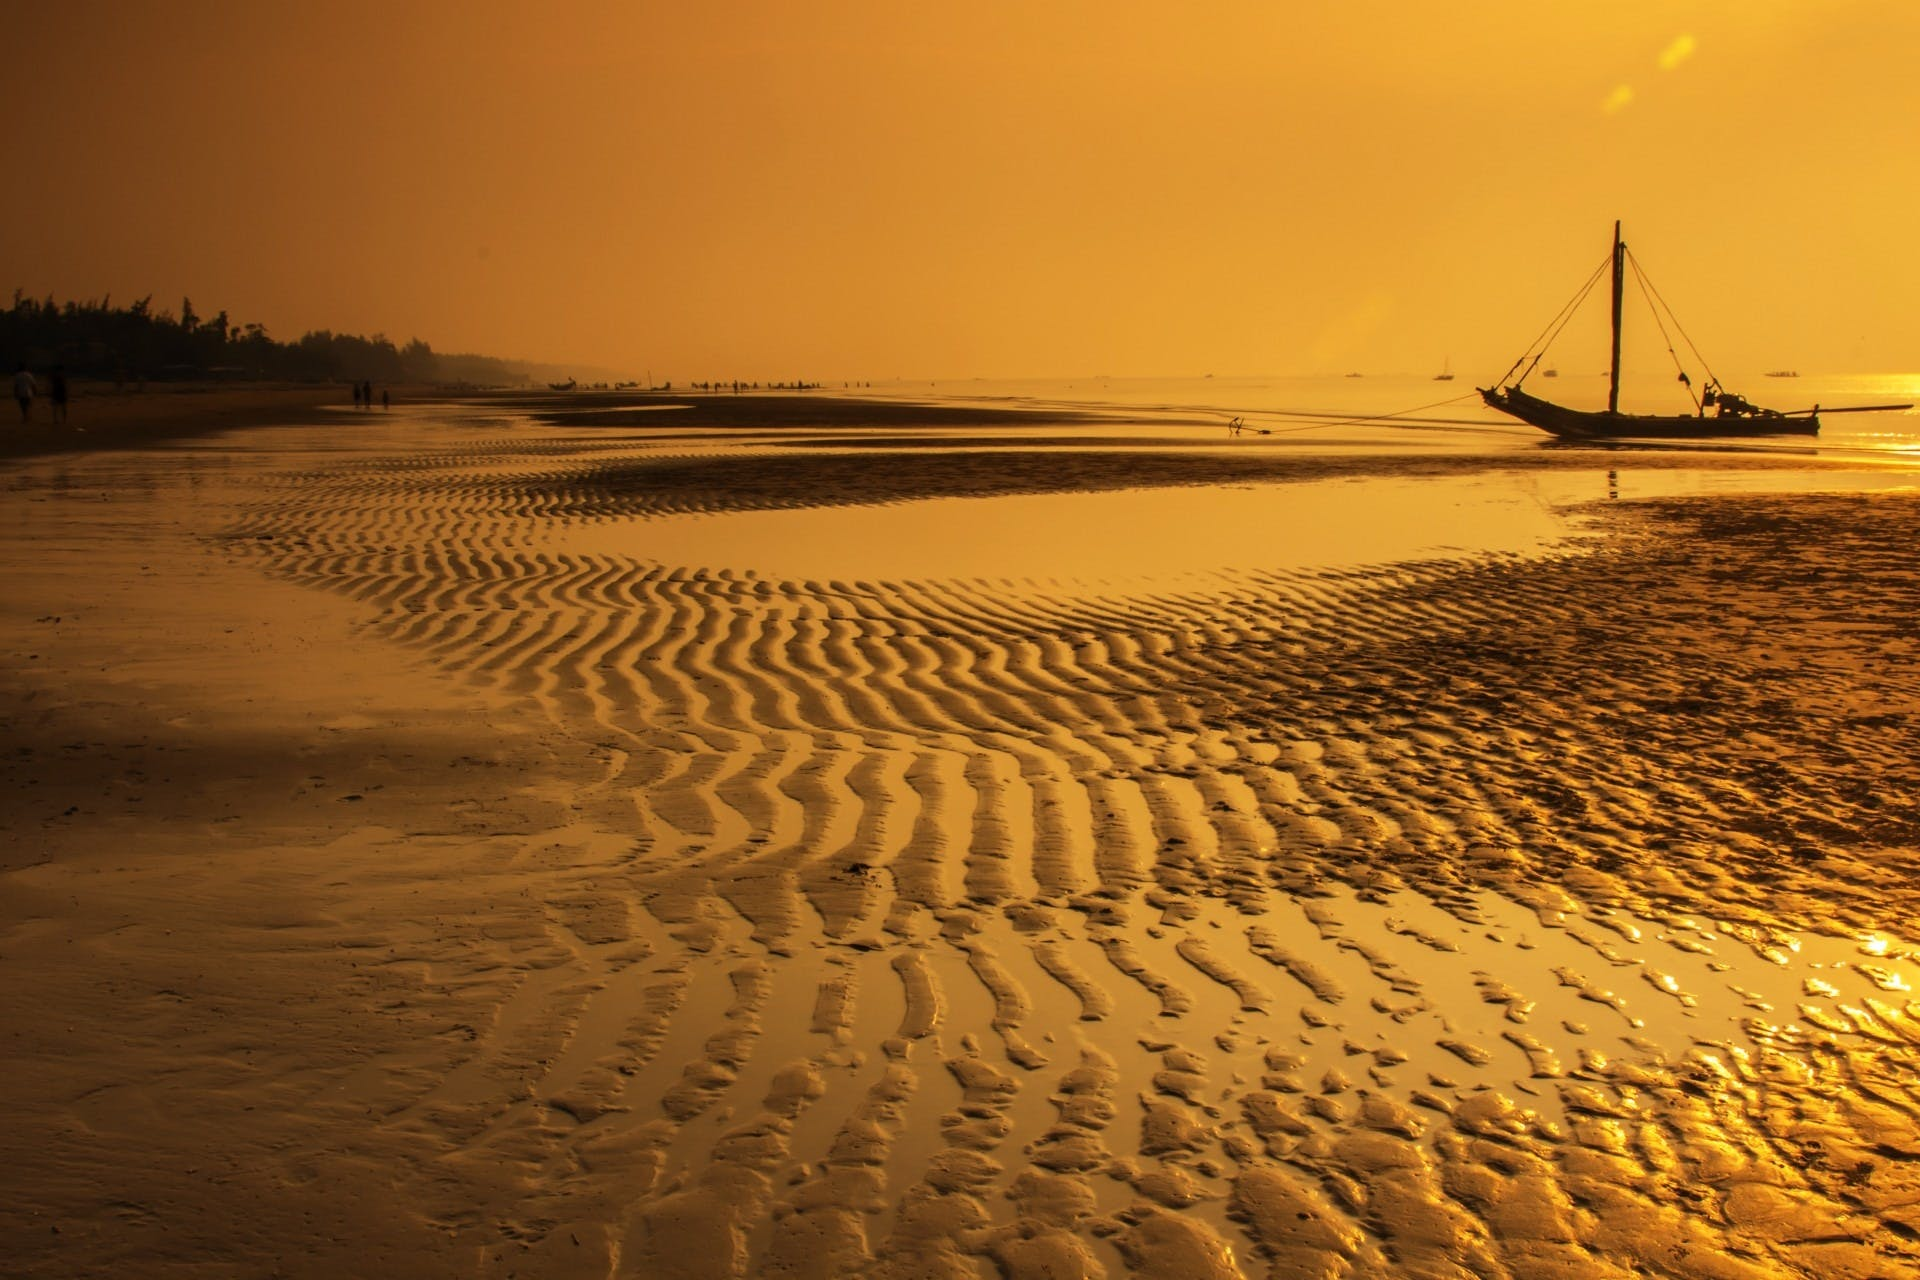 Sea Water With Boat during Sunset